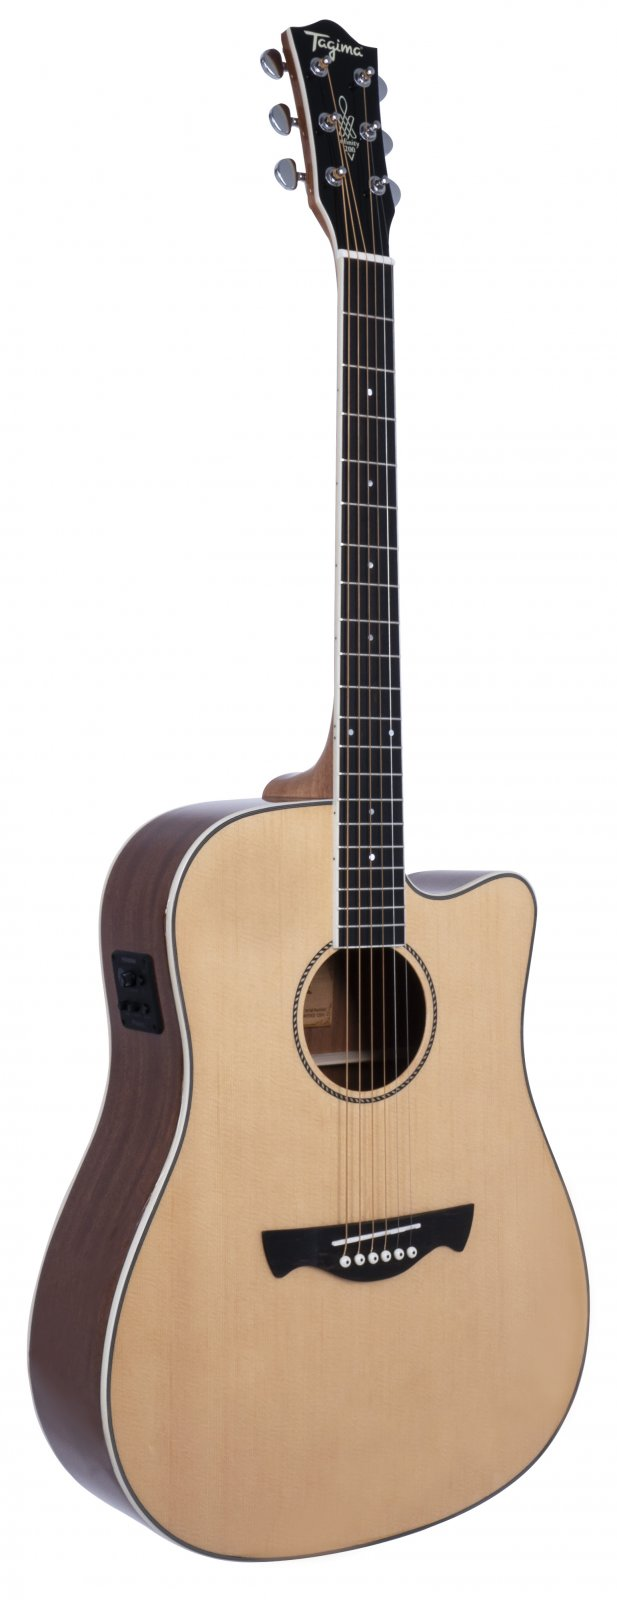 Tagima Infinity 200 Kansas Acoustic Electric Cutaway